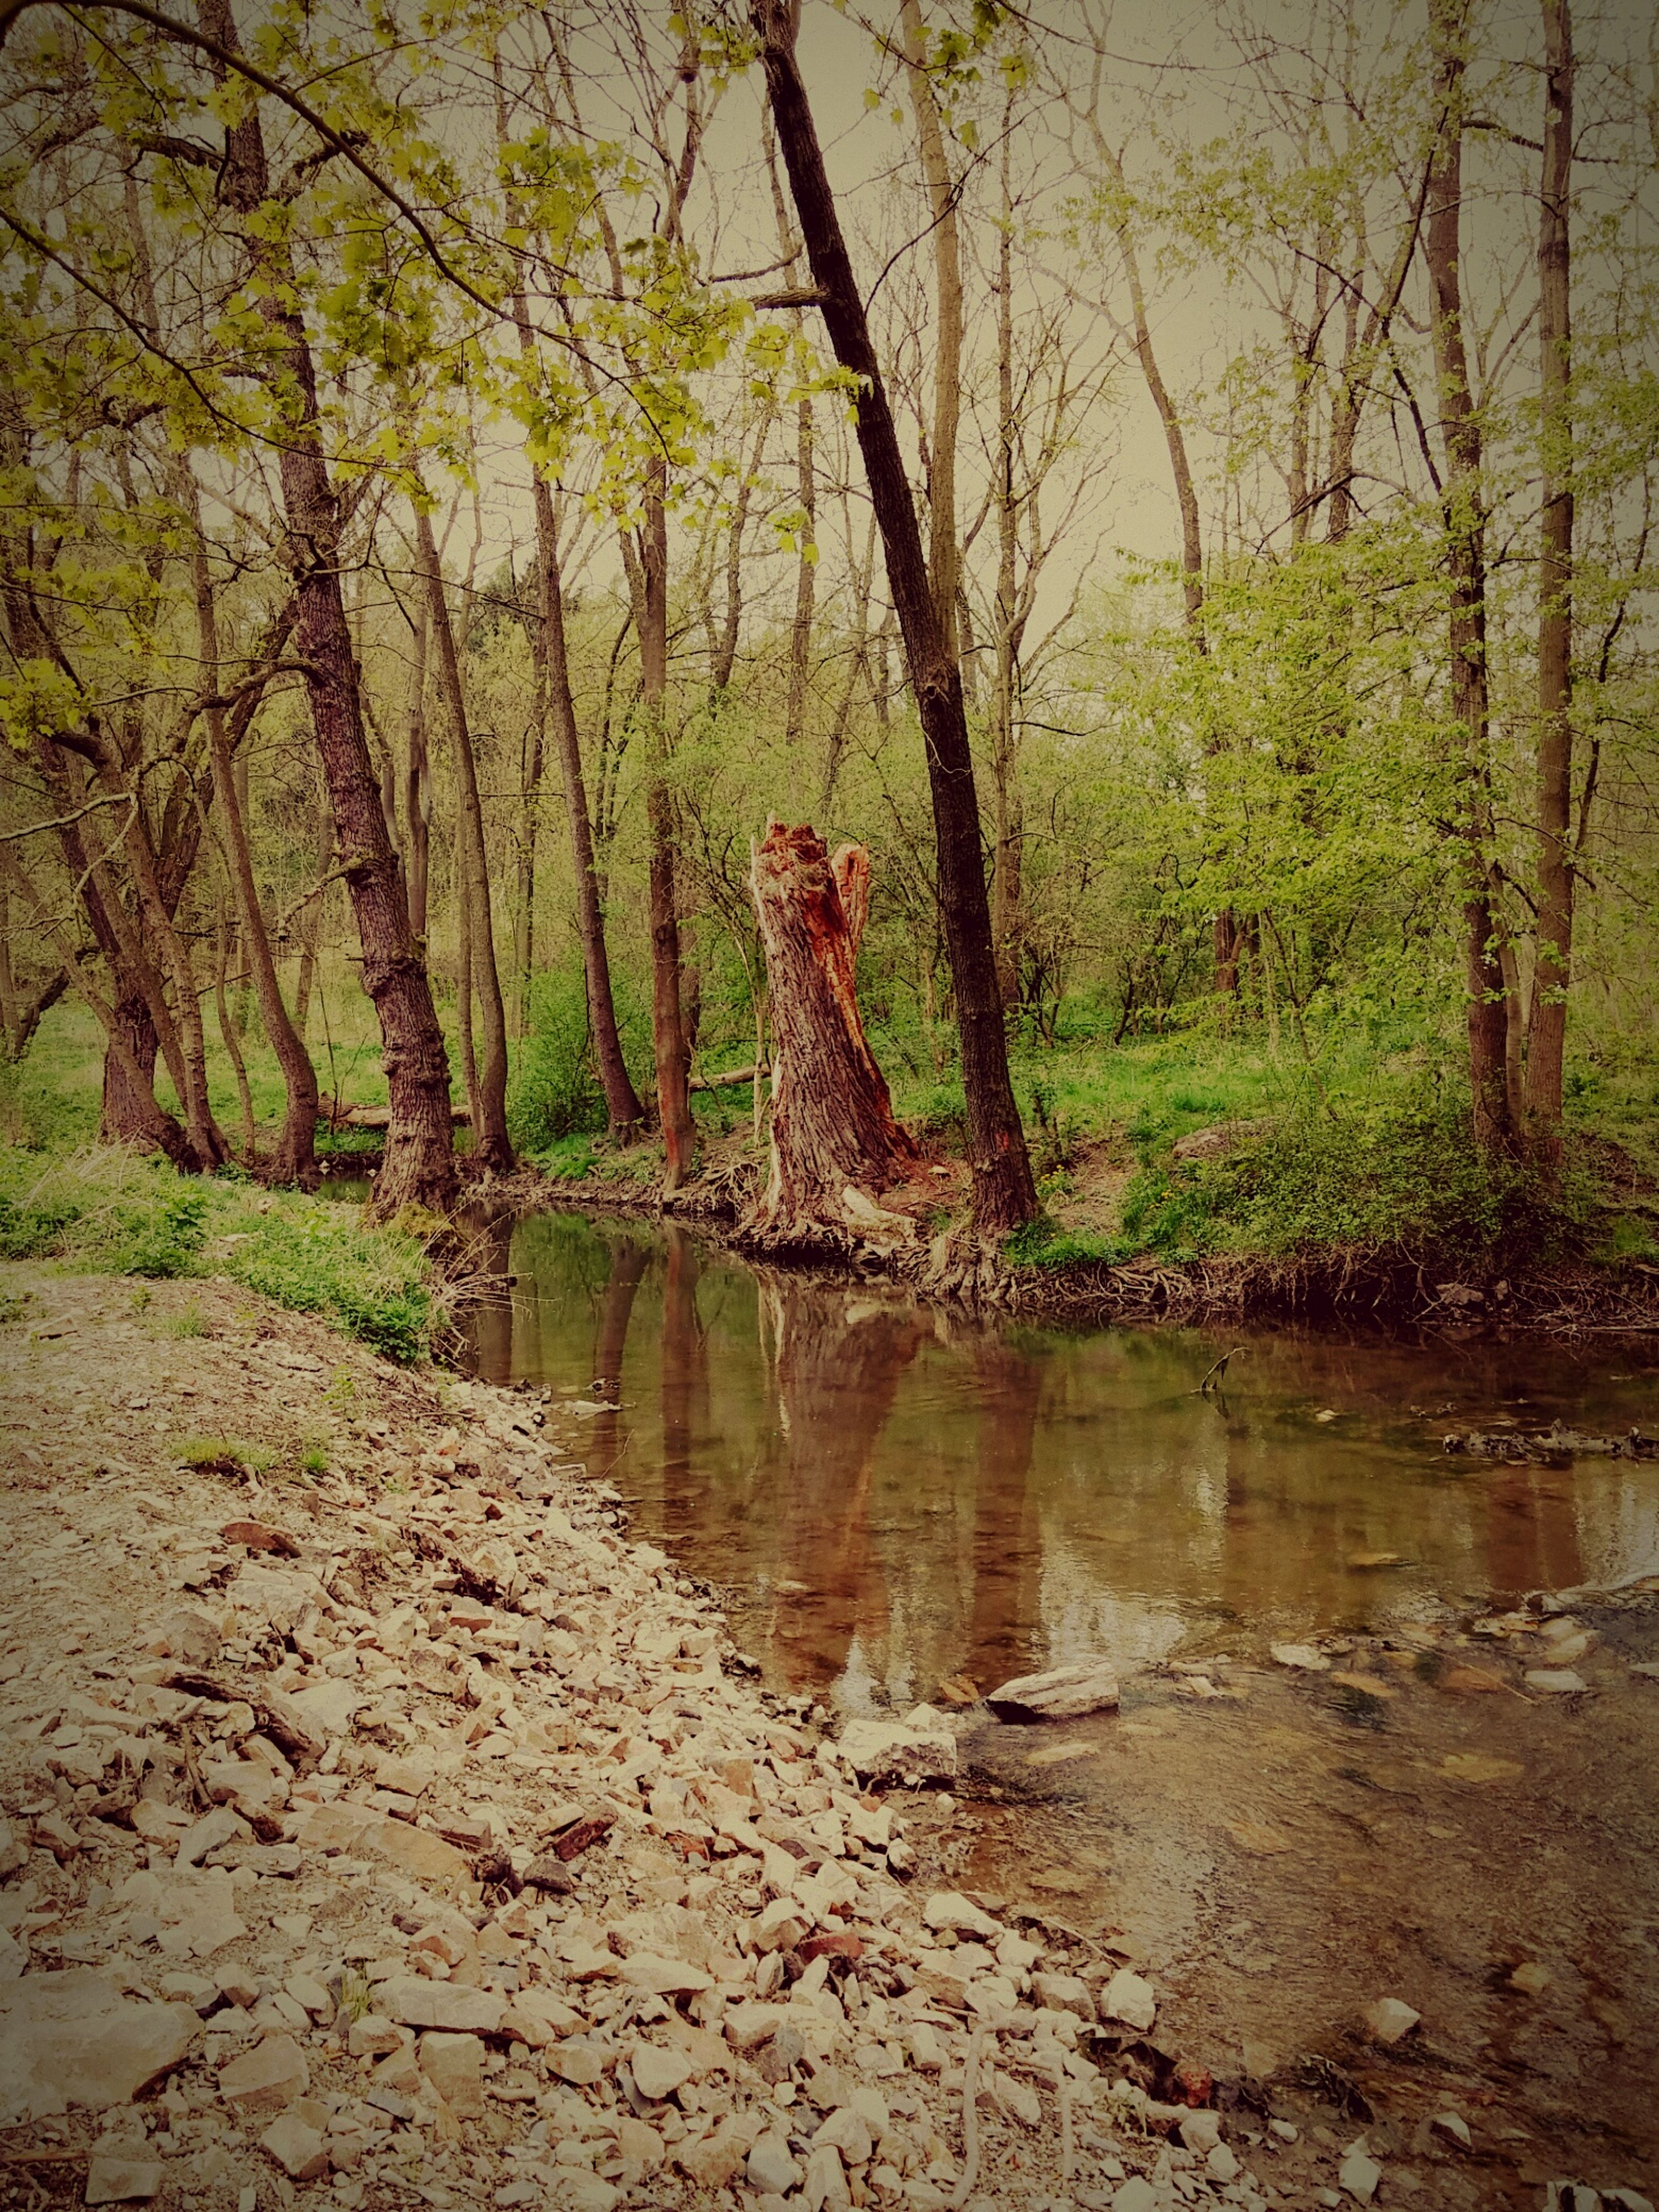 tree, water, tranquility, tranquil scene, reflection, lake, branch, nature, scenics, beauty in nature, forest, tree trunk, bare tree, river, non-urban scene, growth, idyllic, outdoors, lakeshore, no people